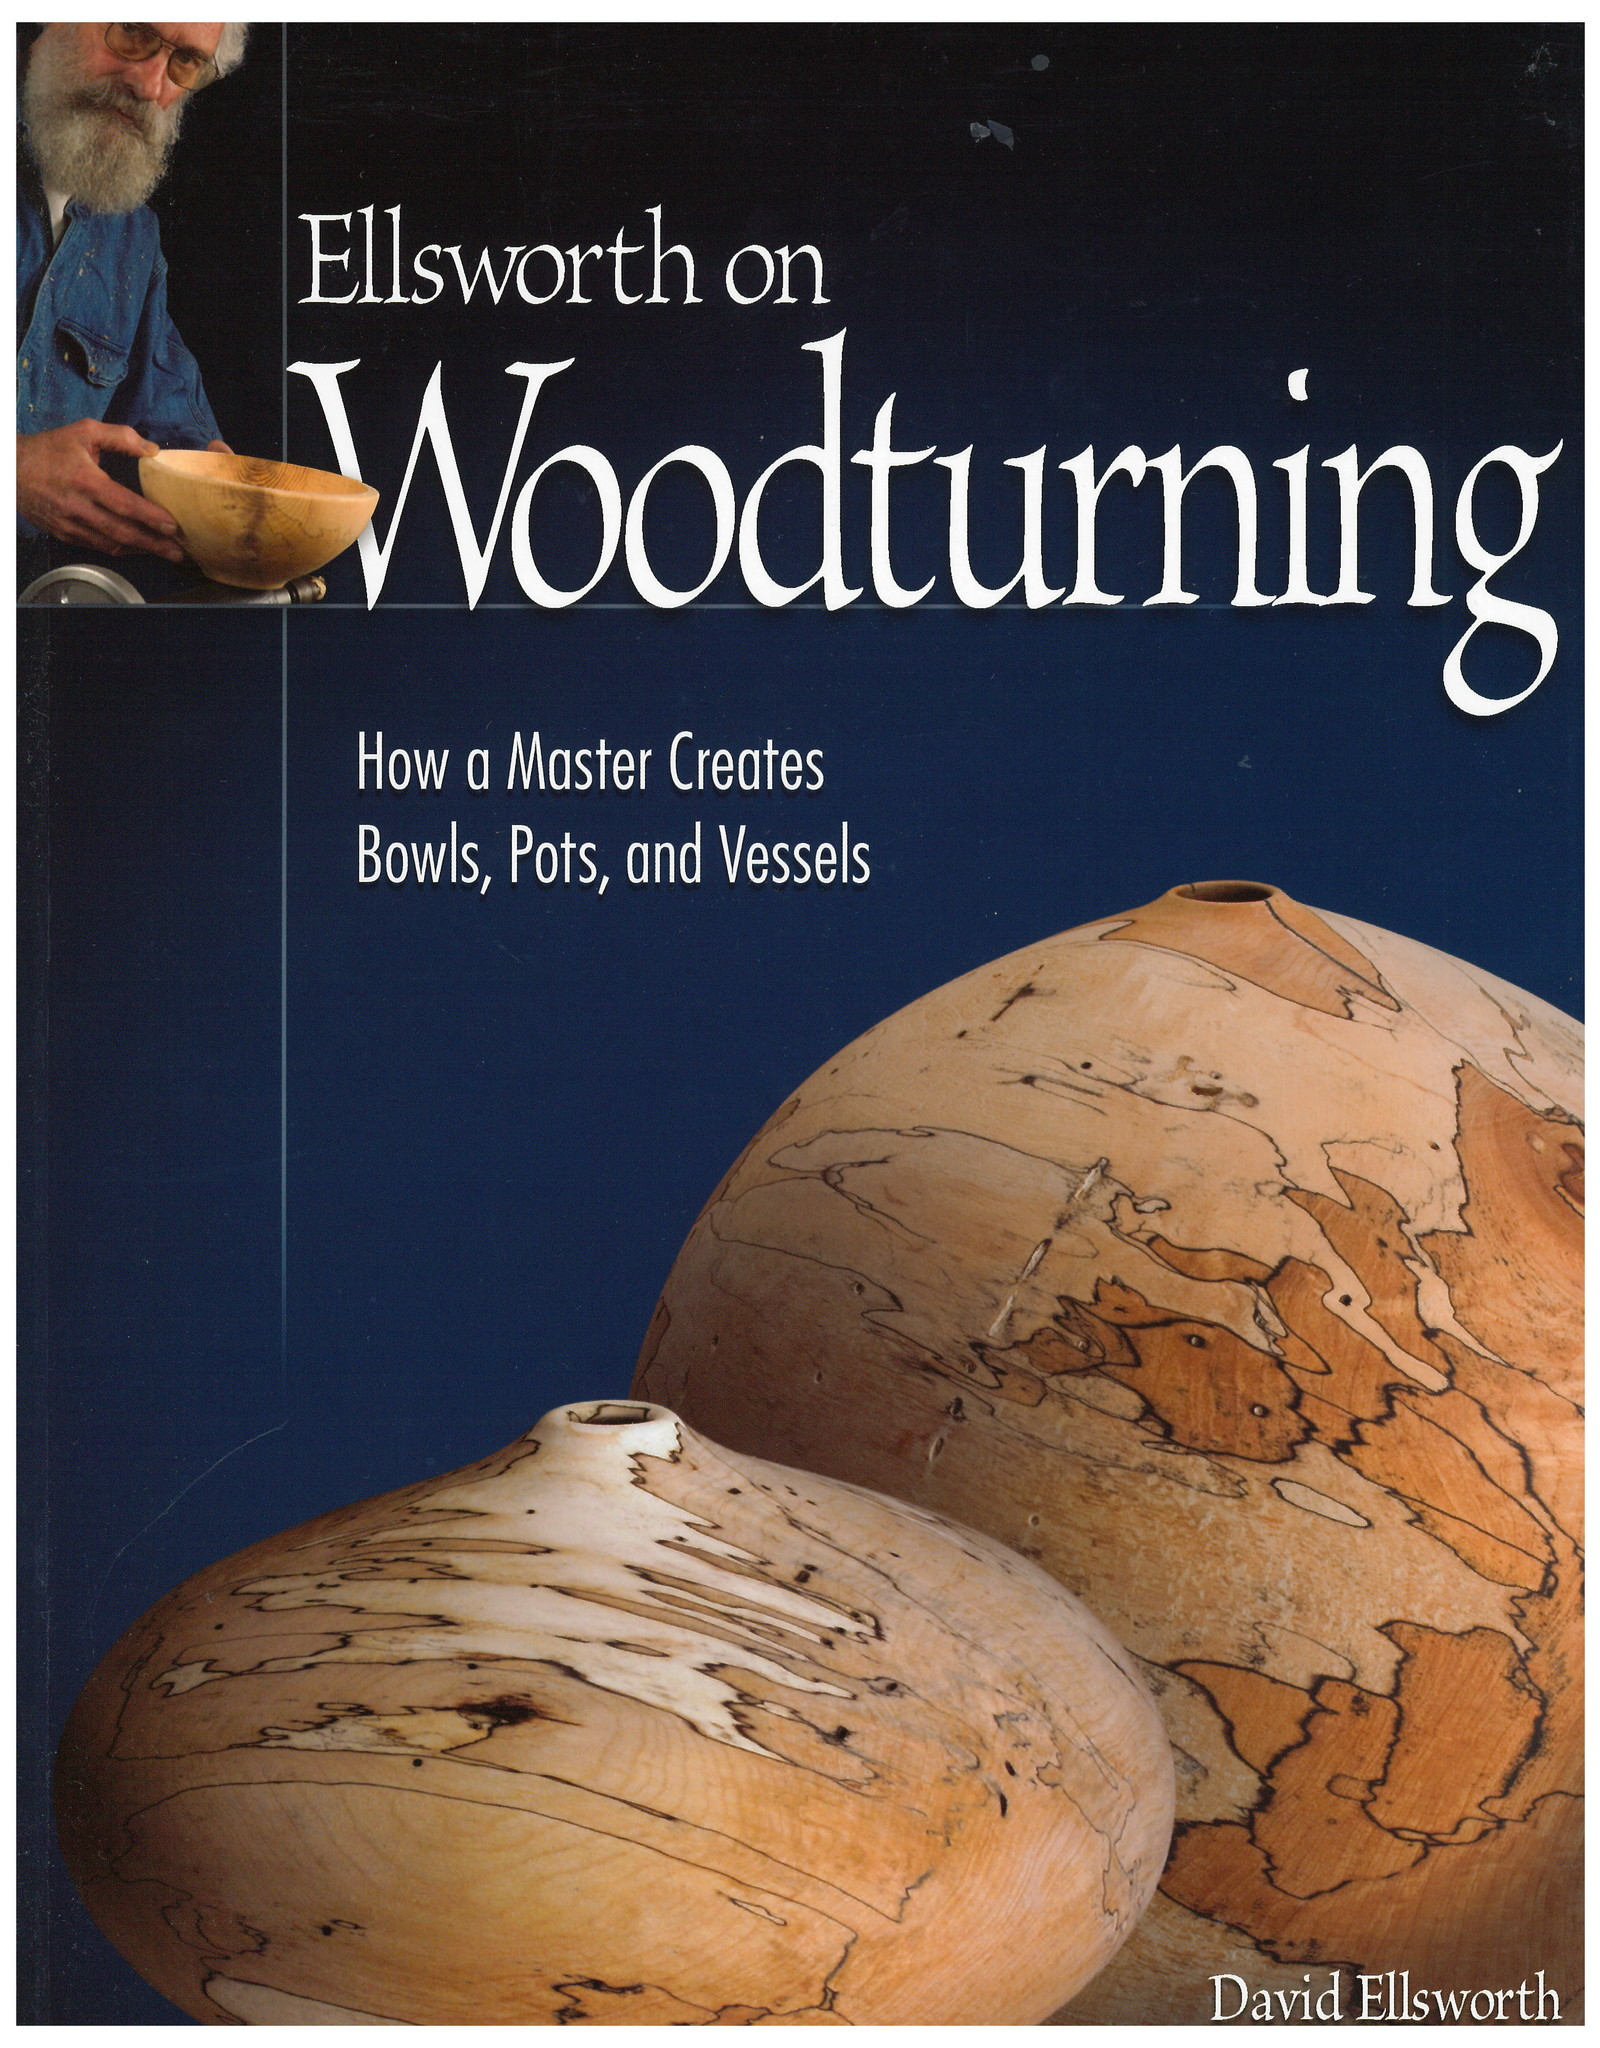 Ellsworth on Woodturning: How a Master Creates Bowls, Pots, and Vessels / David Ellsworth